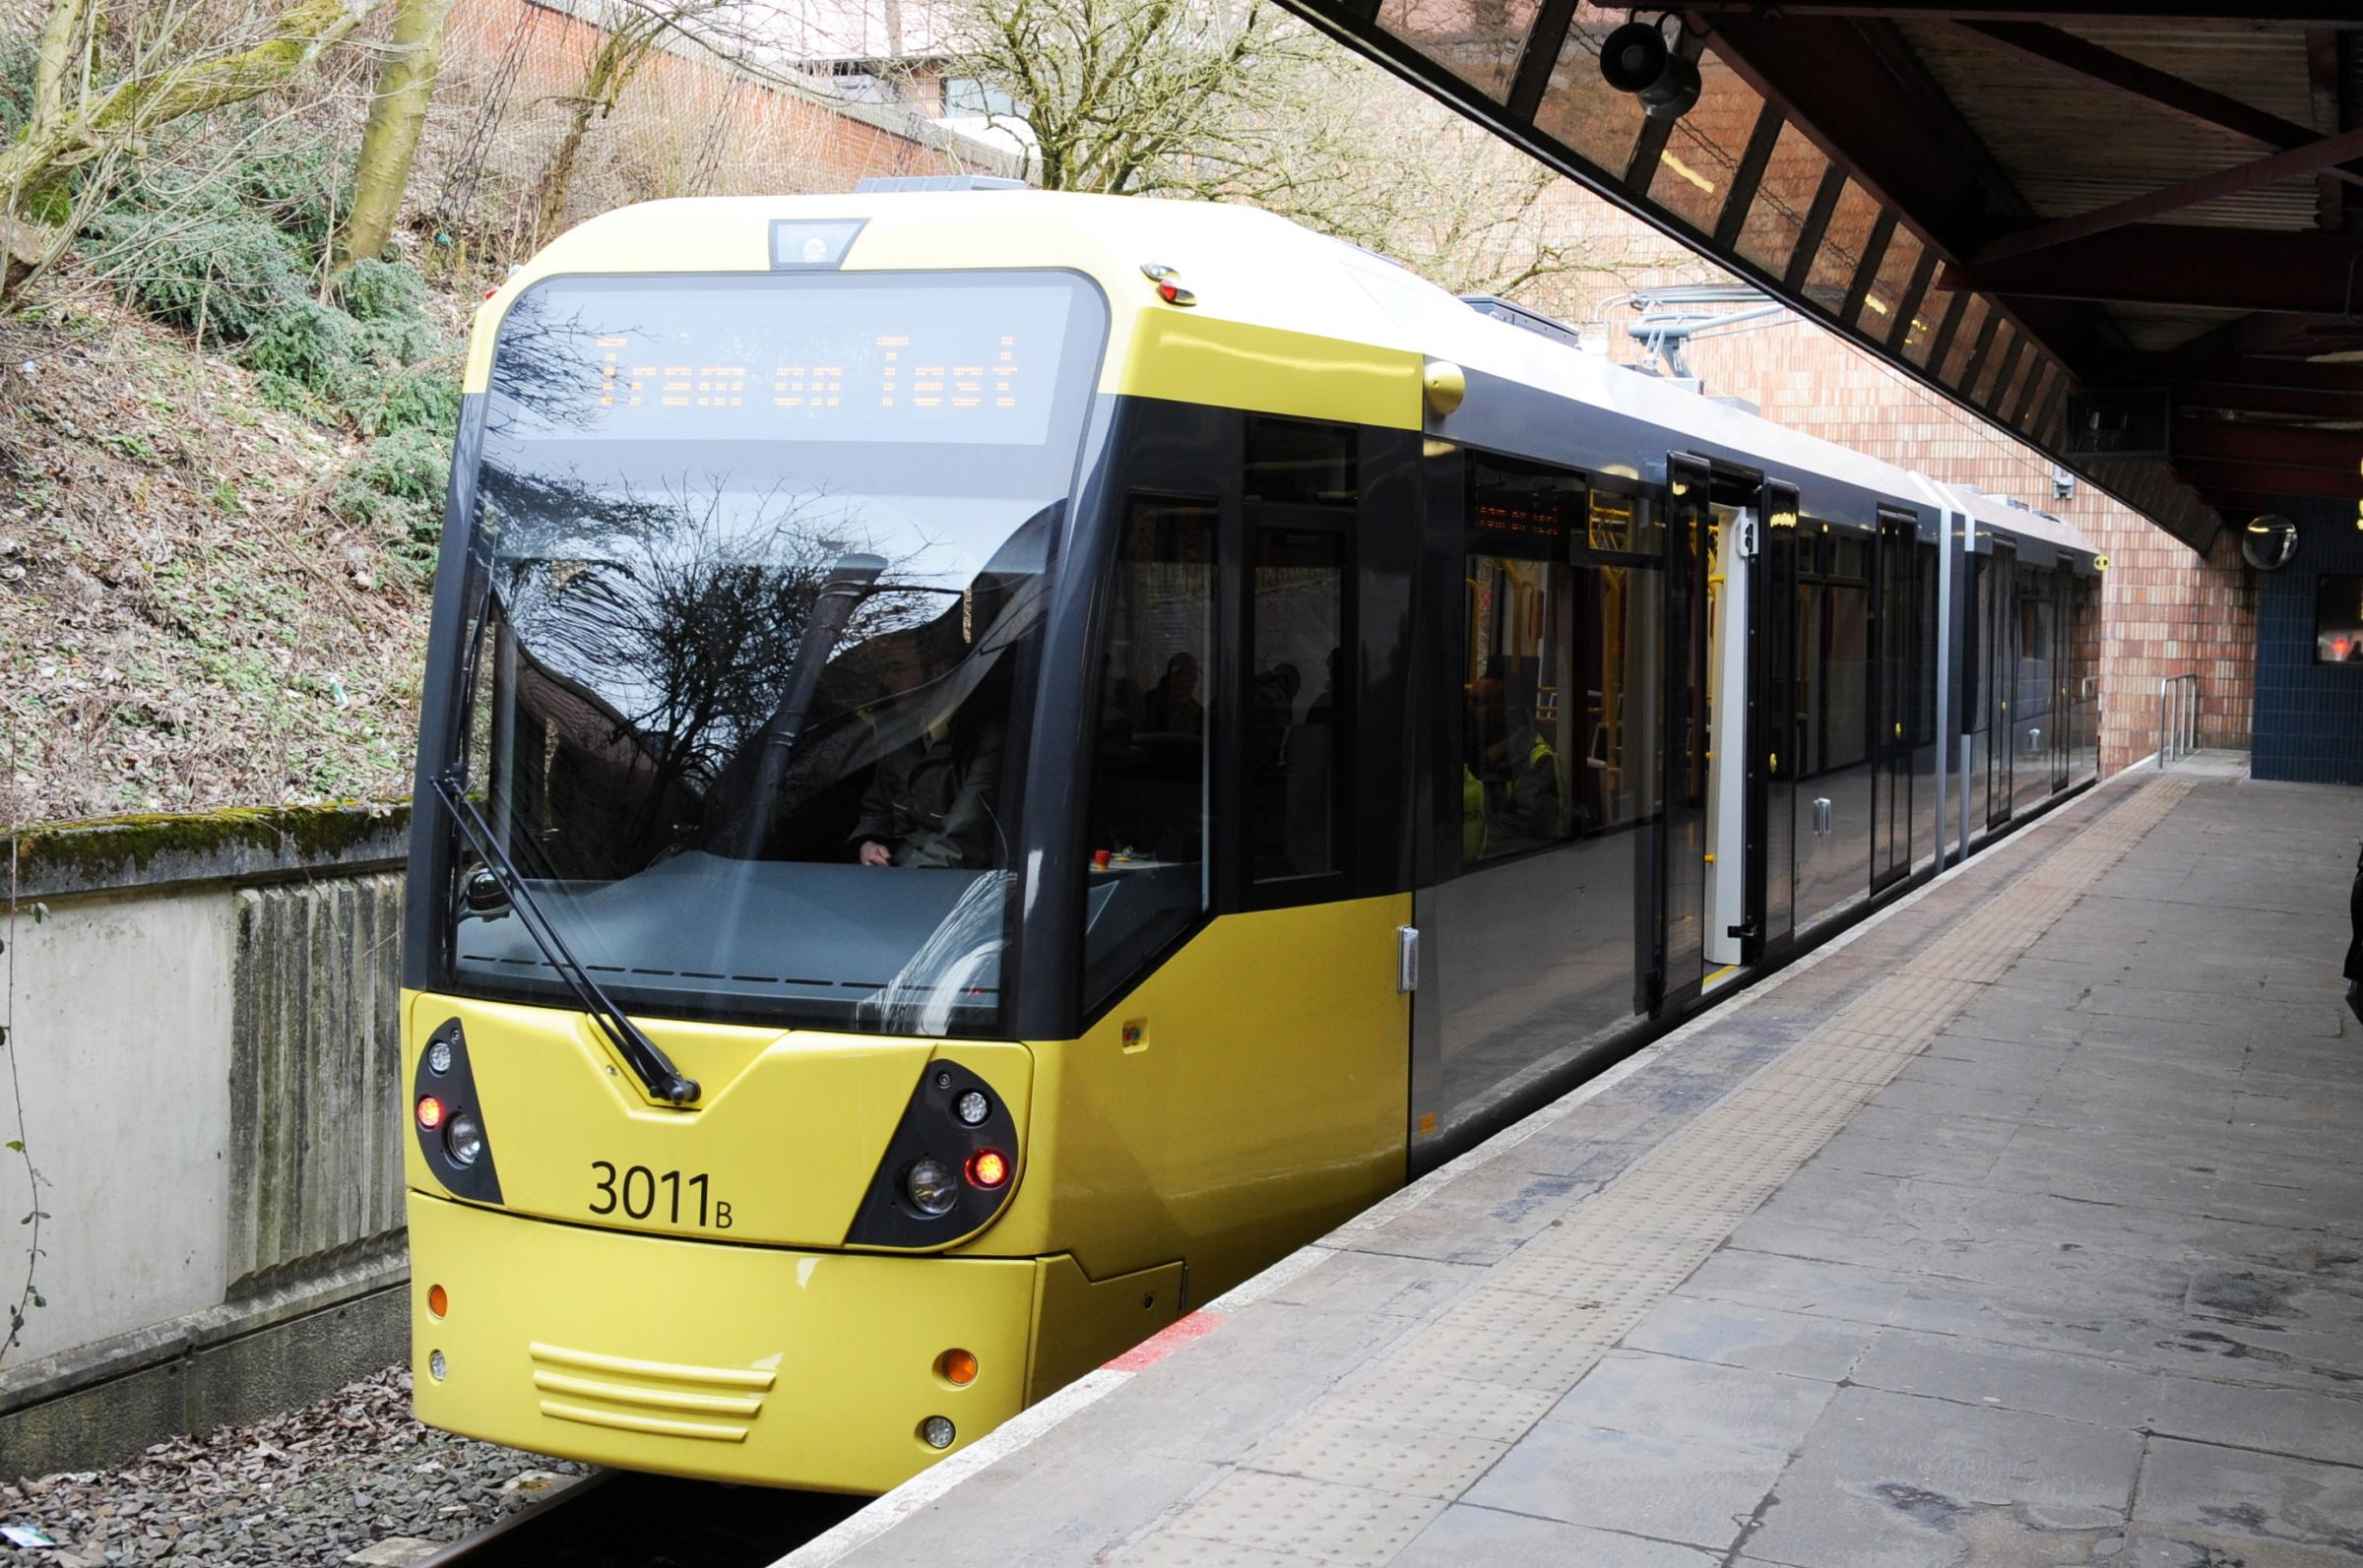 Metrolink tram at Bury.